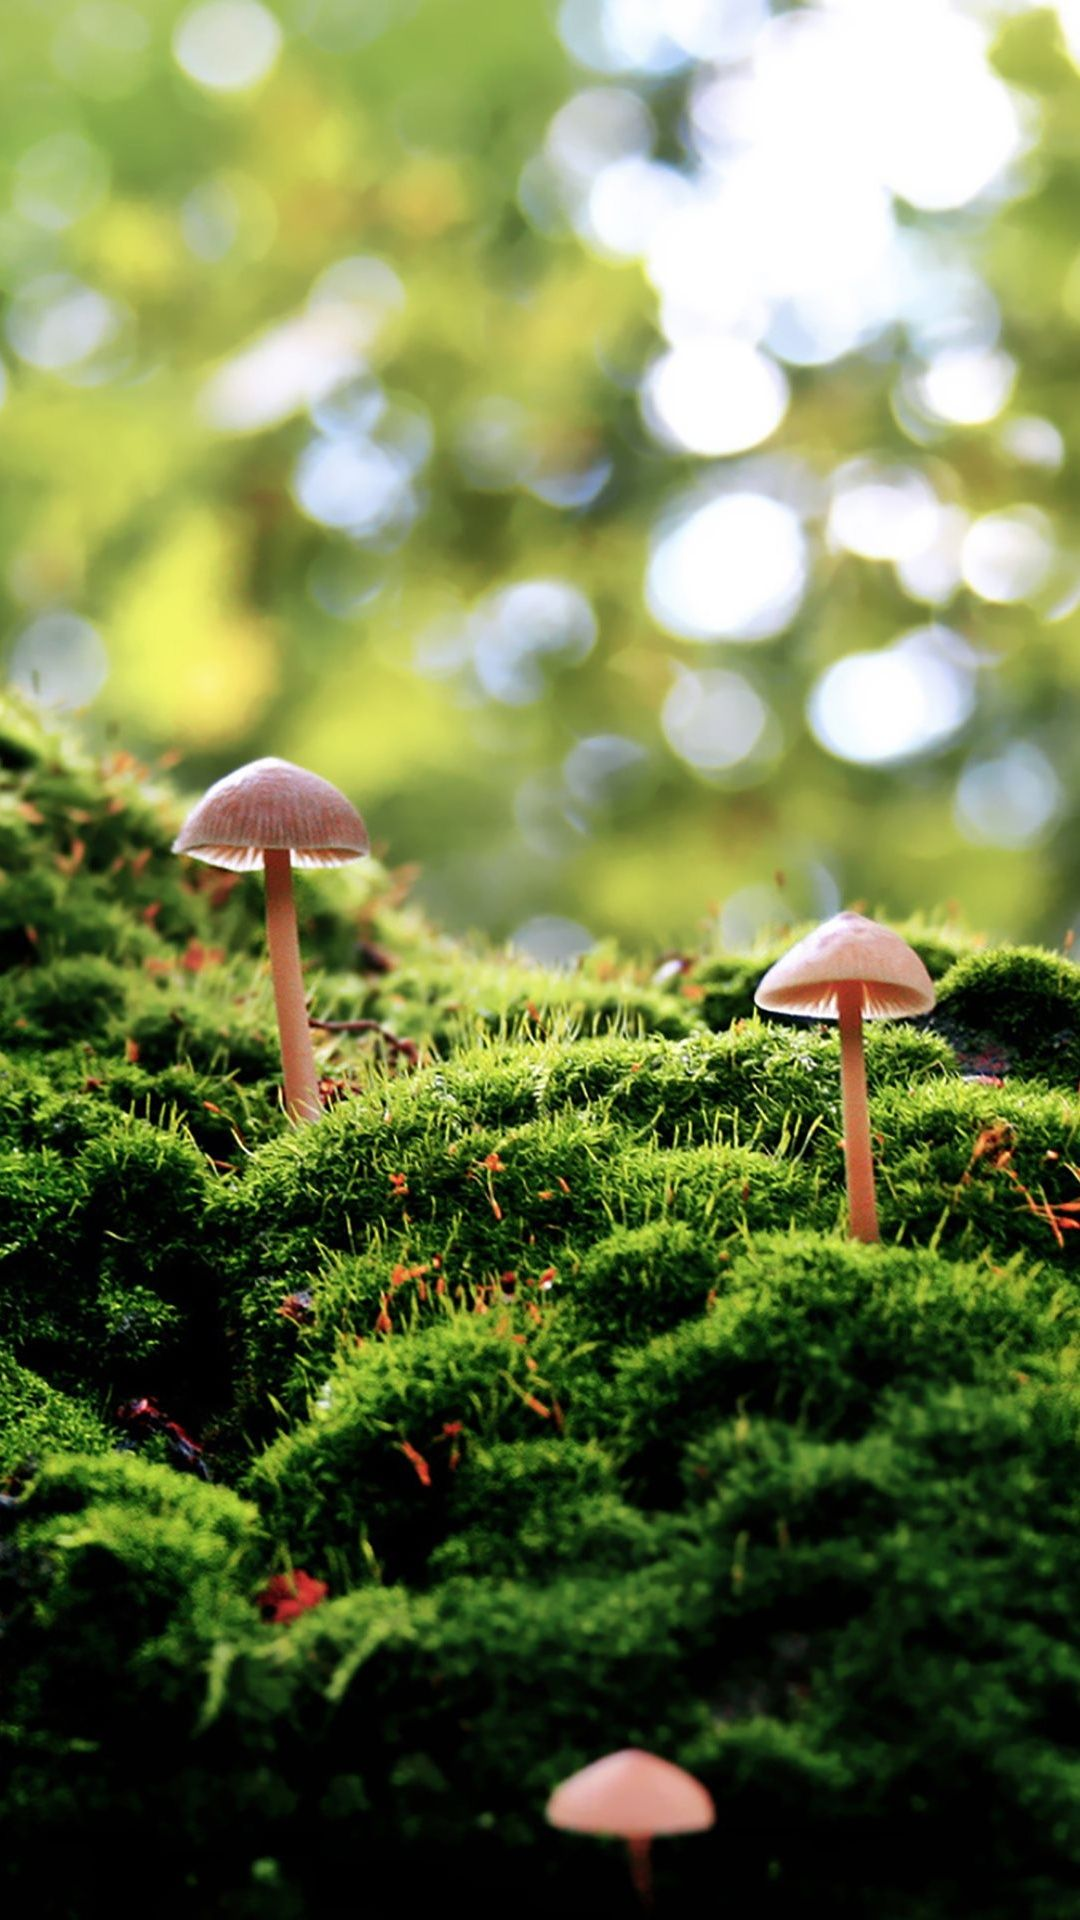 Tap And Get The Free App Nature Mushrooms Green Wood Forest Eco Blurred Hd Iphone 6 Plus Wallpaper Mushroom Wallpaper Stuffed Mushrooms Green Nature